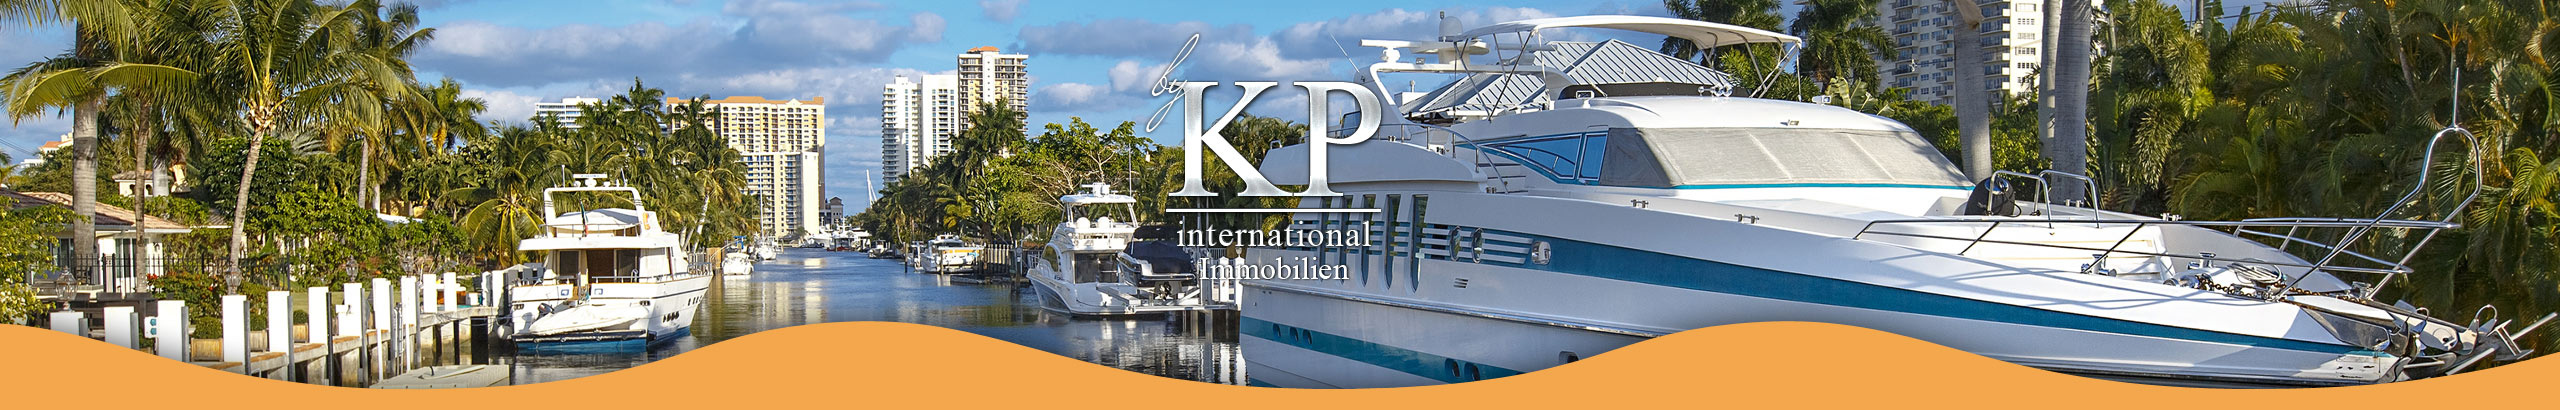 KP-International Immobilien Hofheim